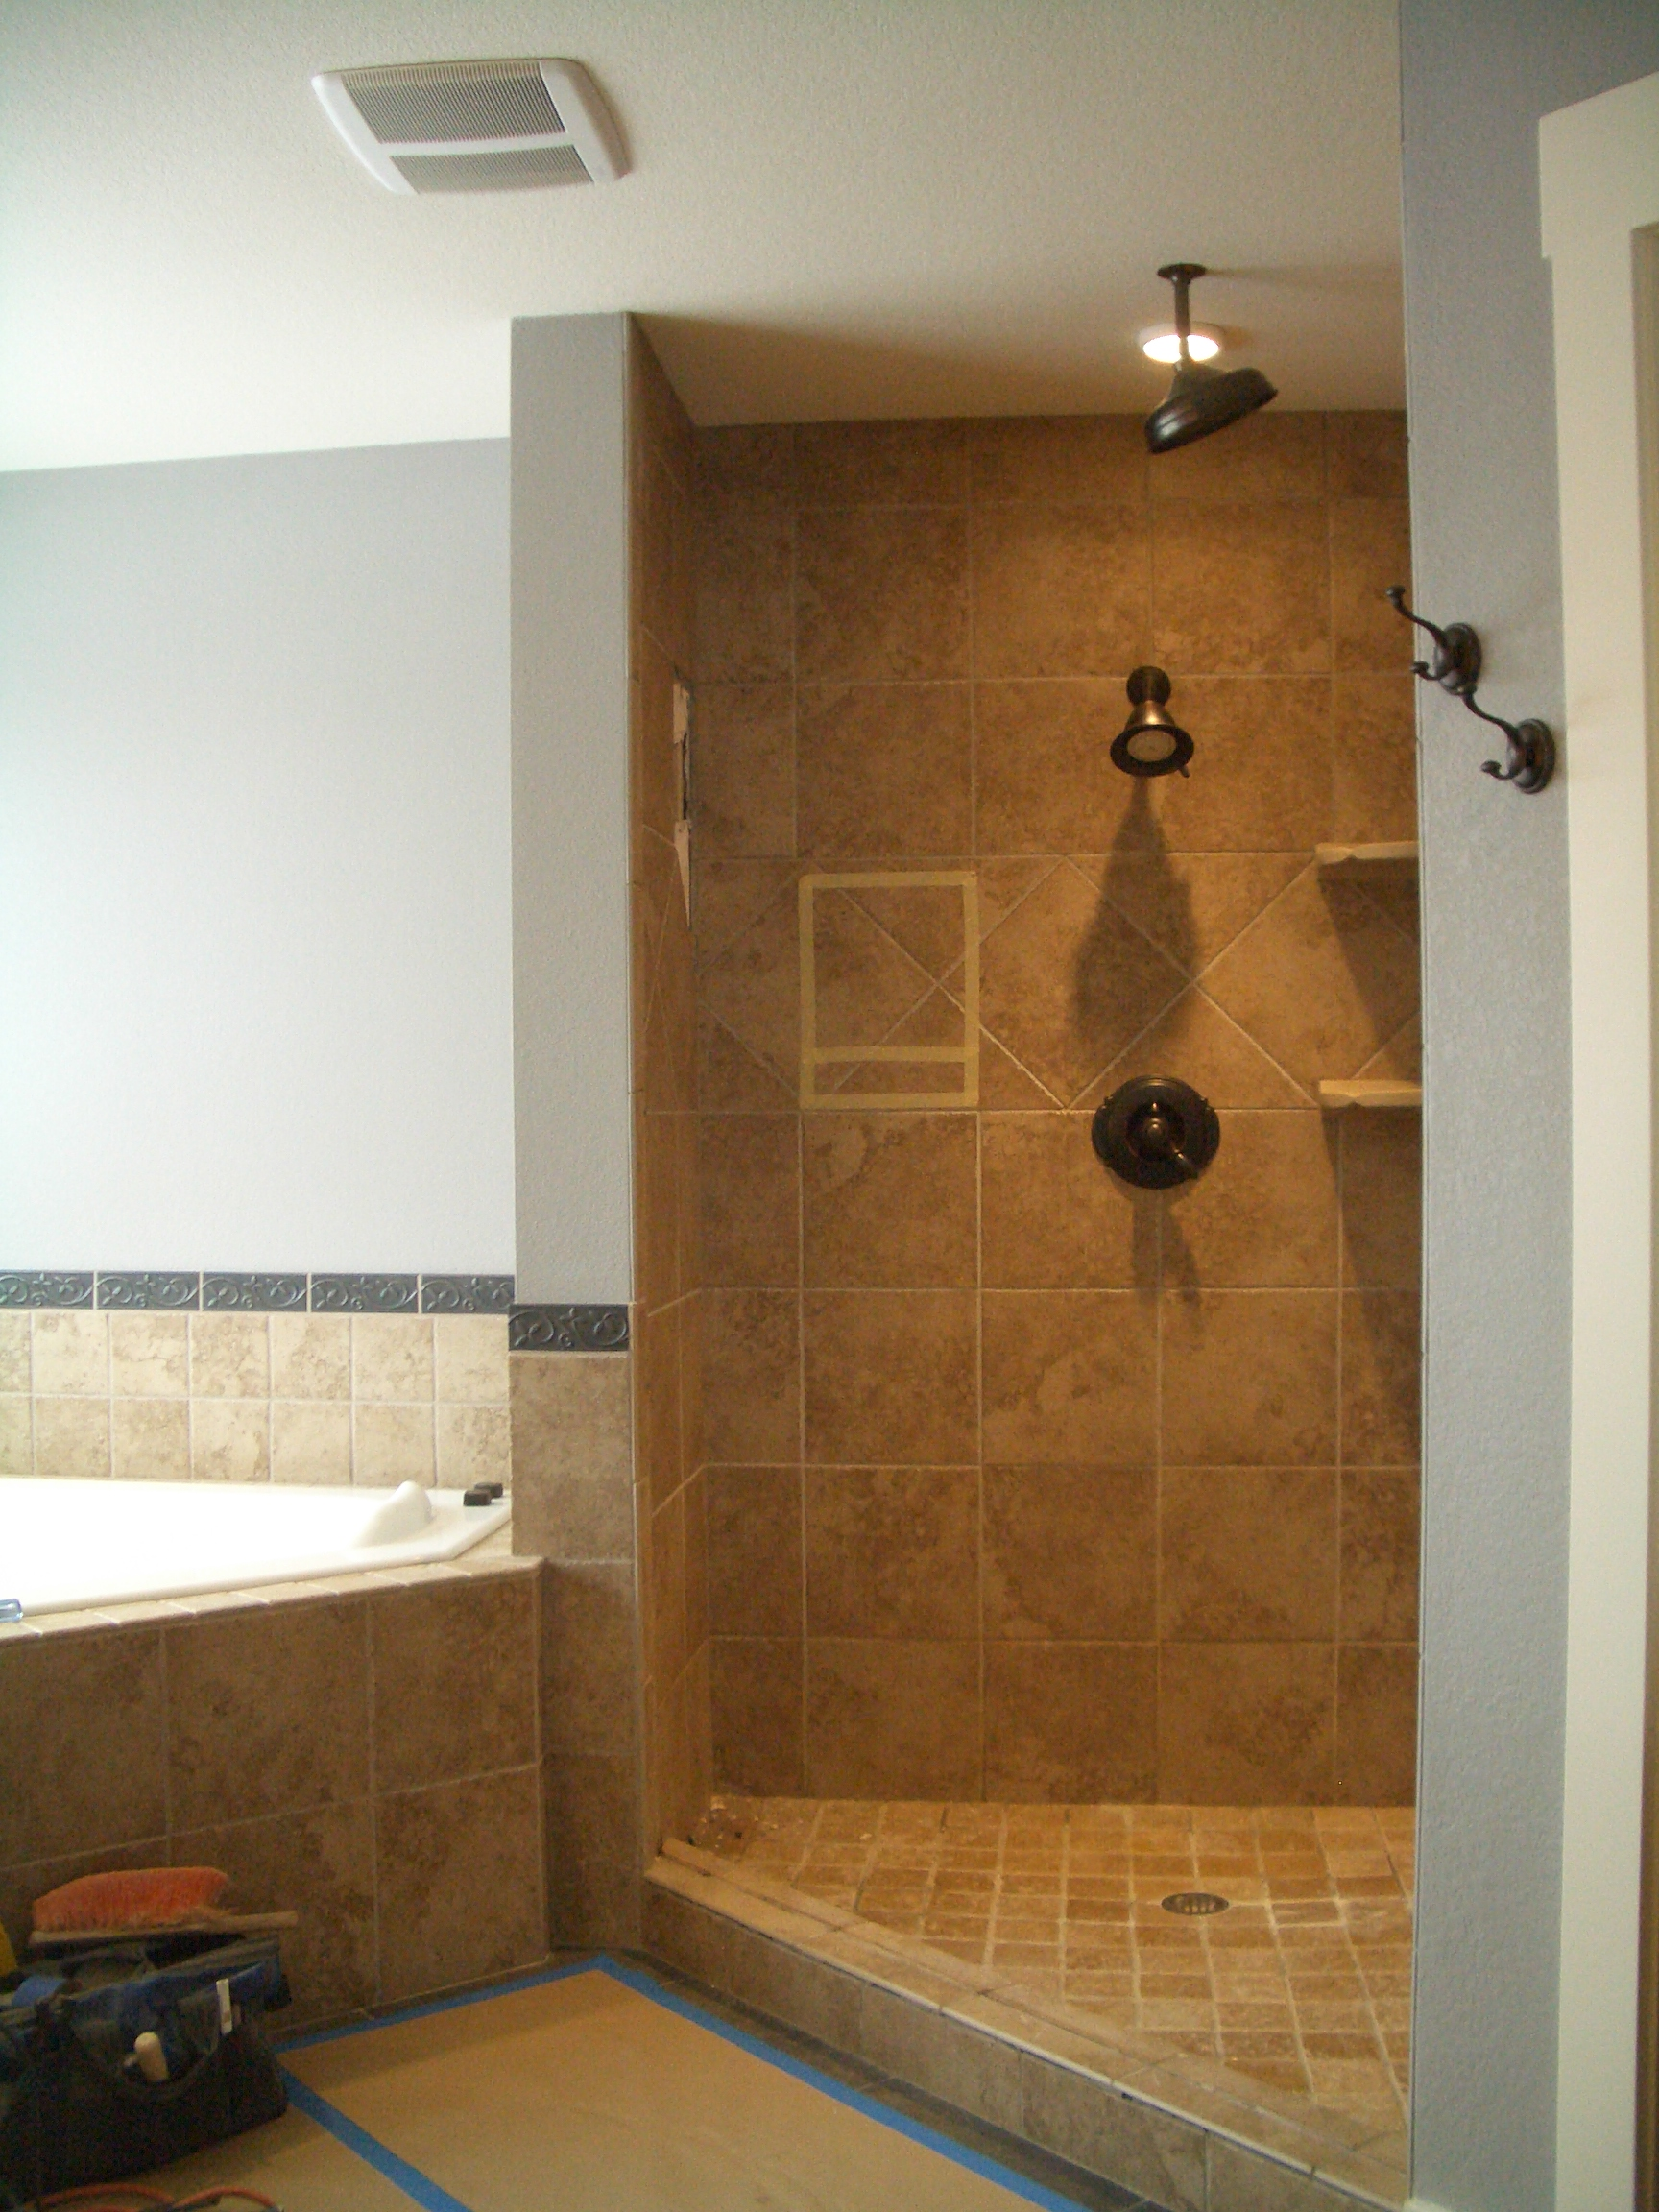 Kerdi master bathroom shower remodel in fort collins - Remodel bathroom designs ...